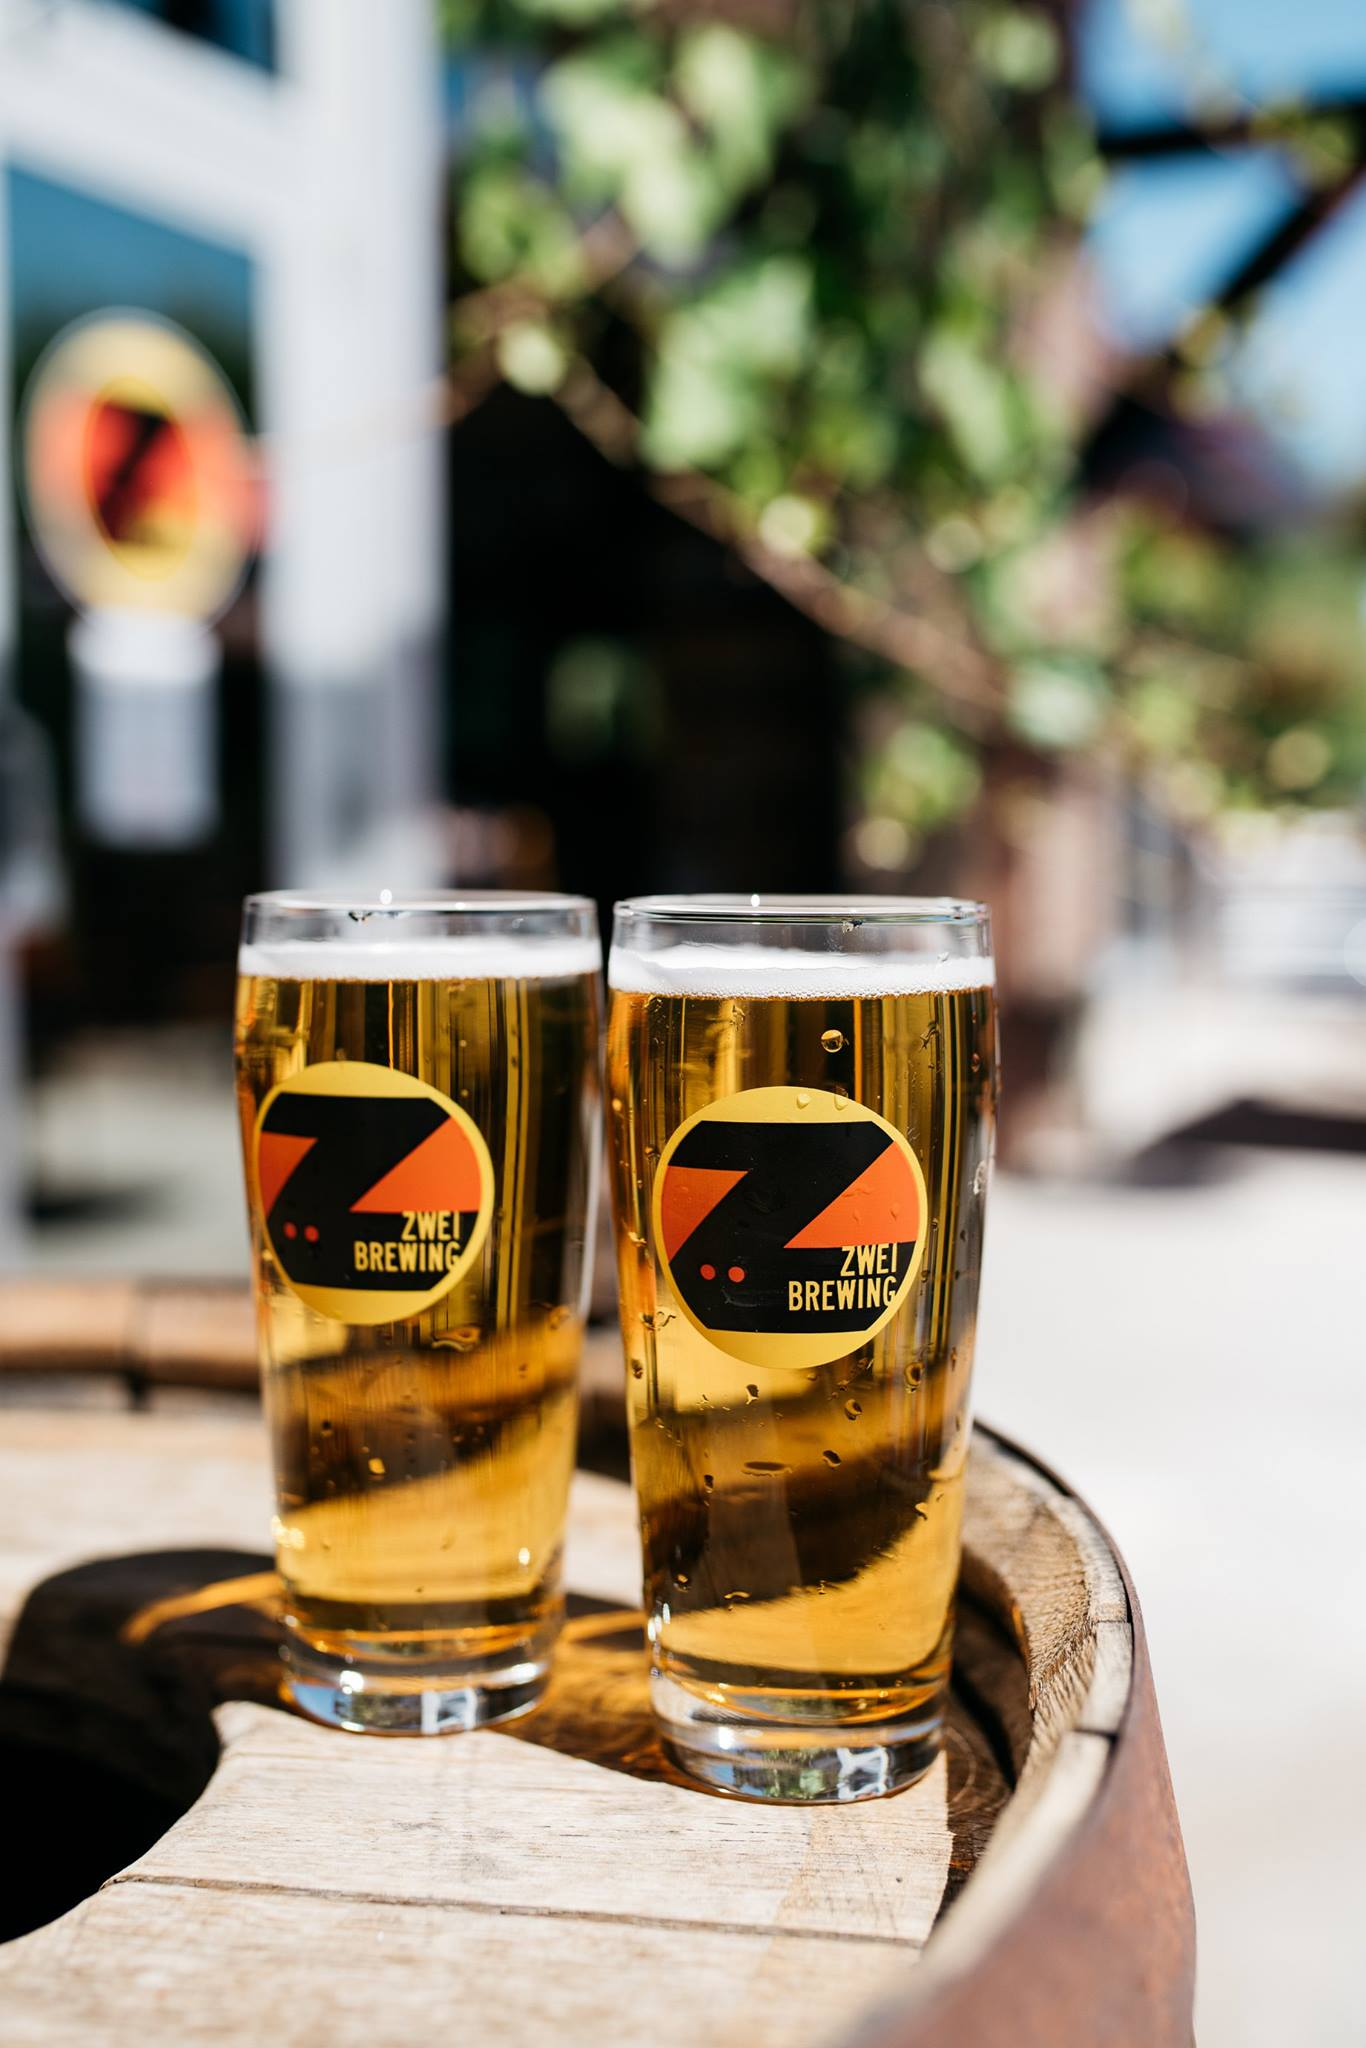 Zwei Brewing Co